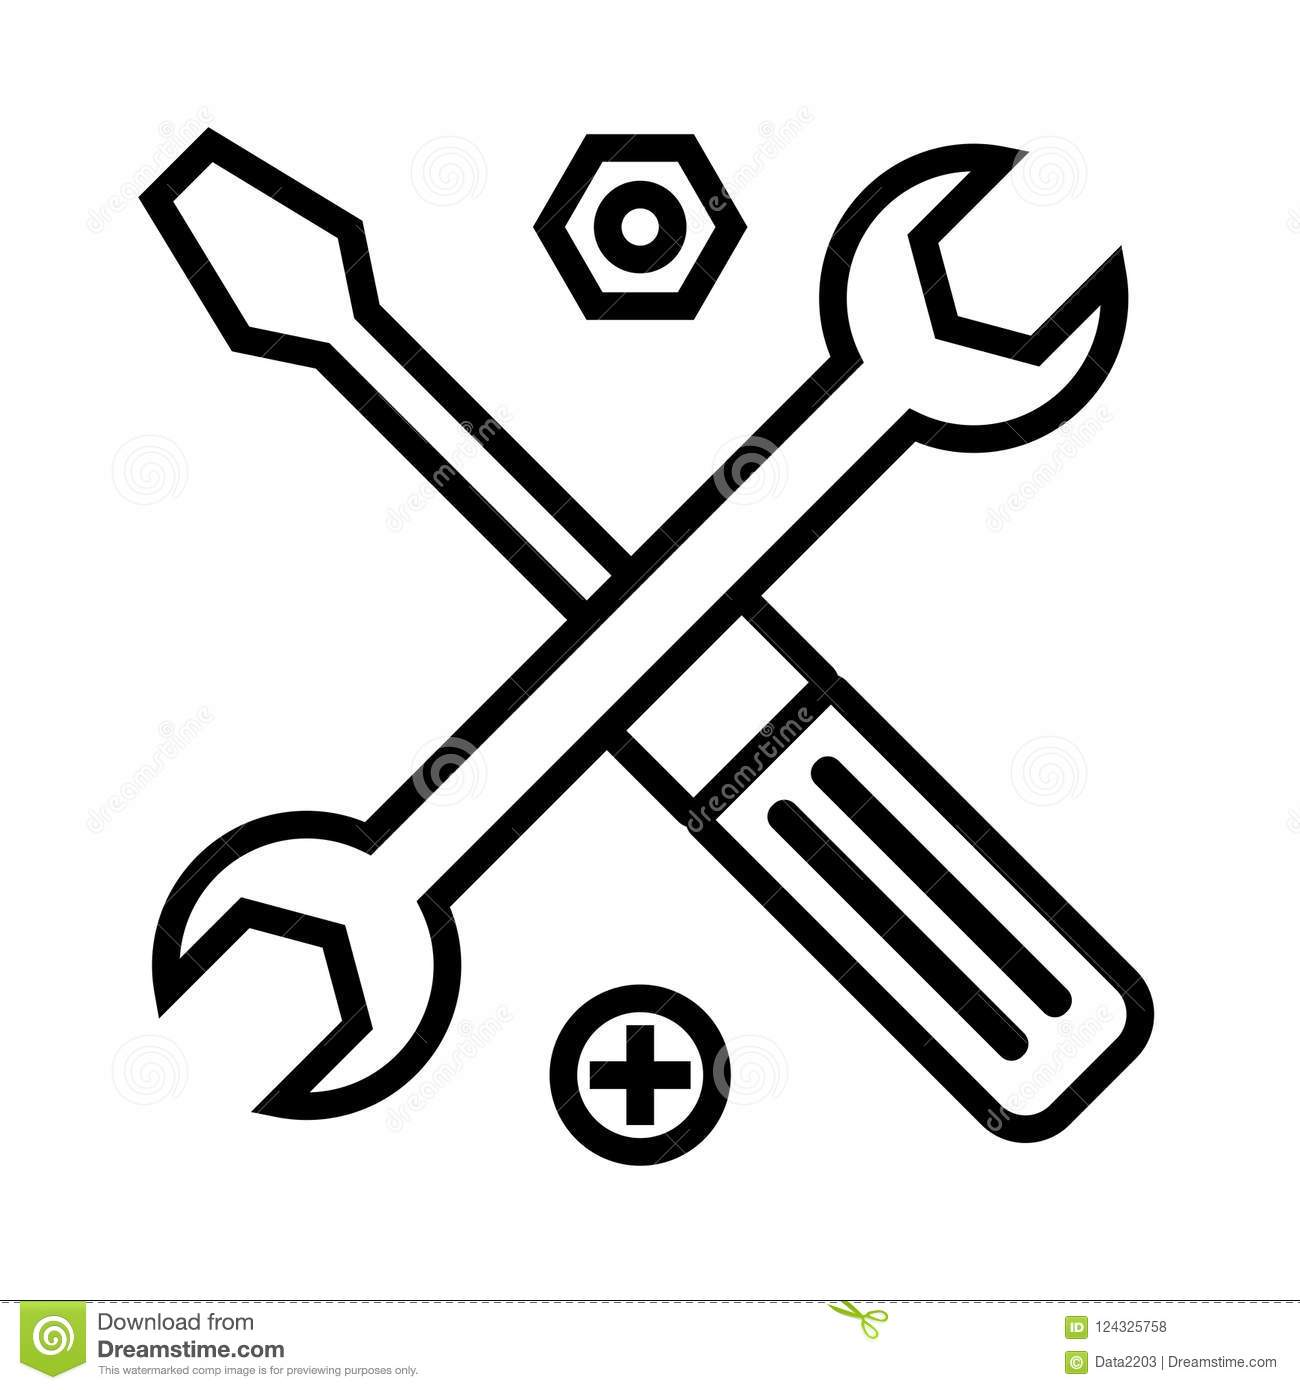 Technical support symbol. Tools outline icon